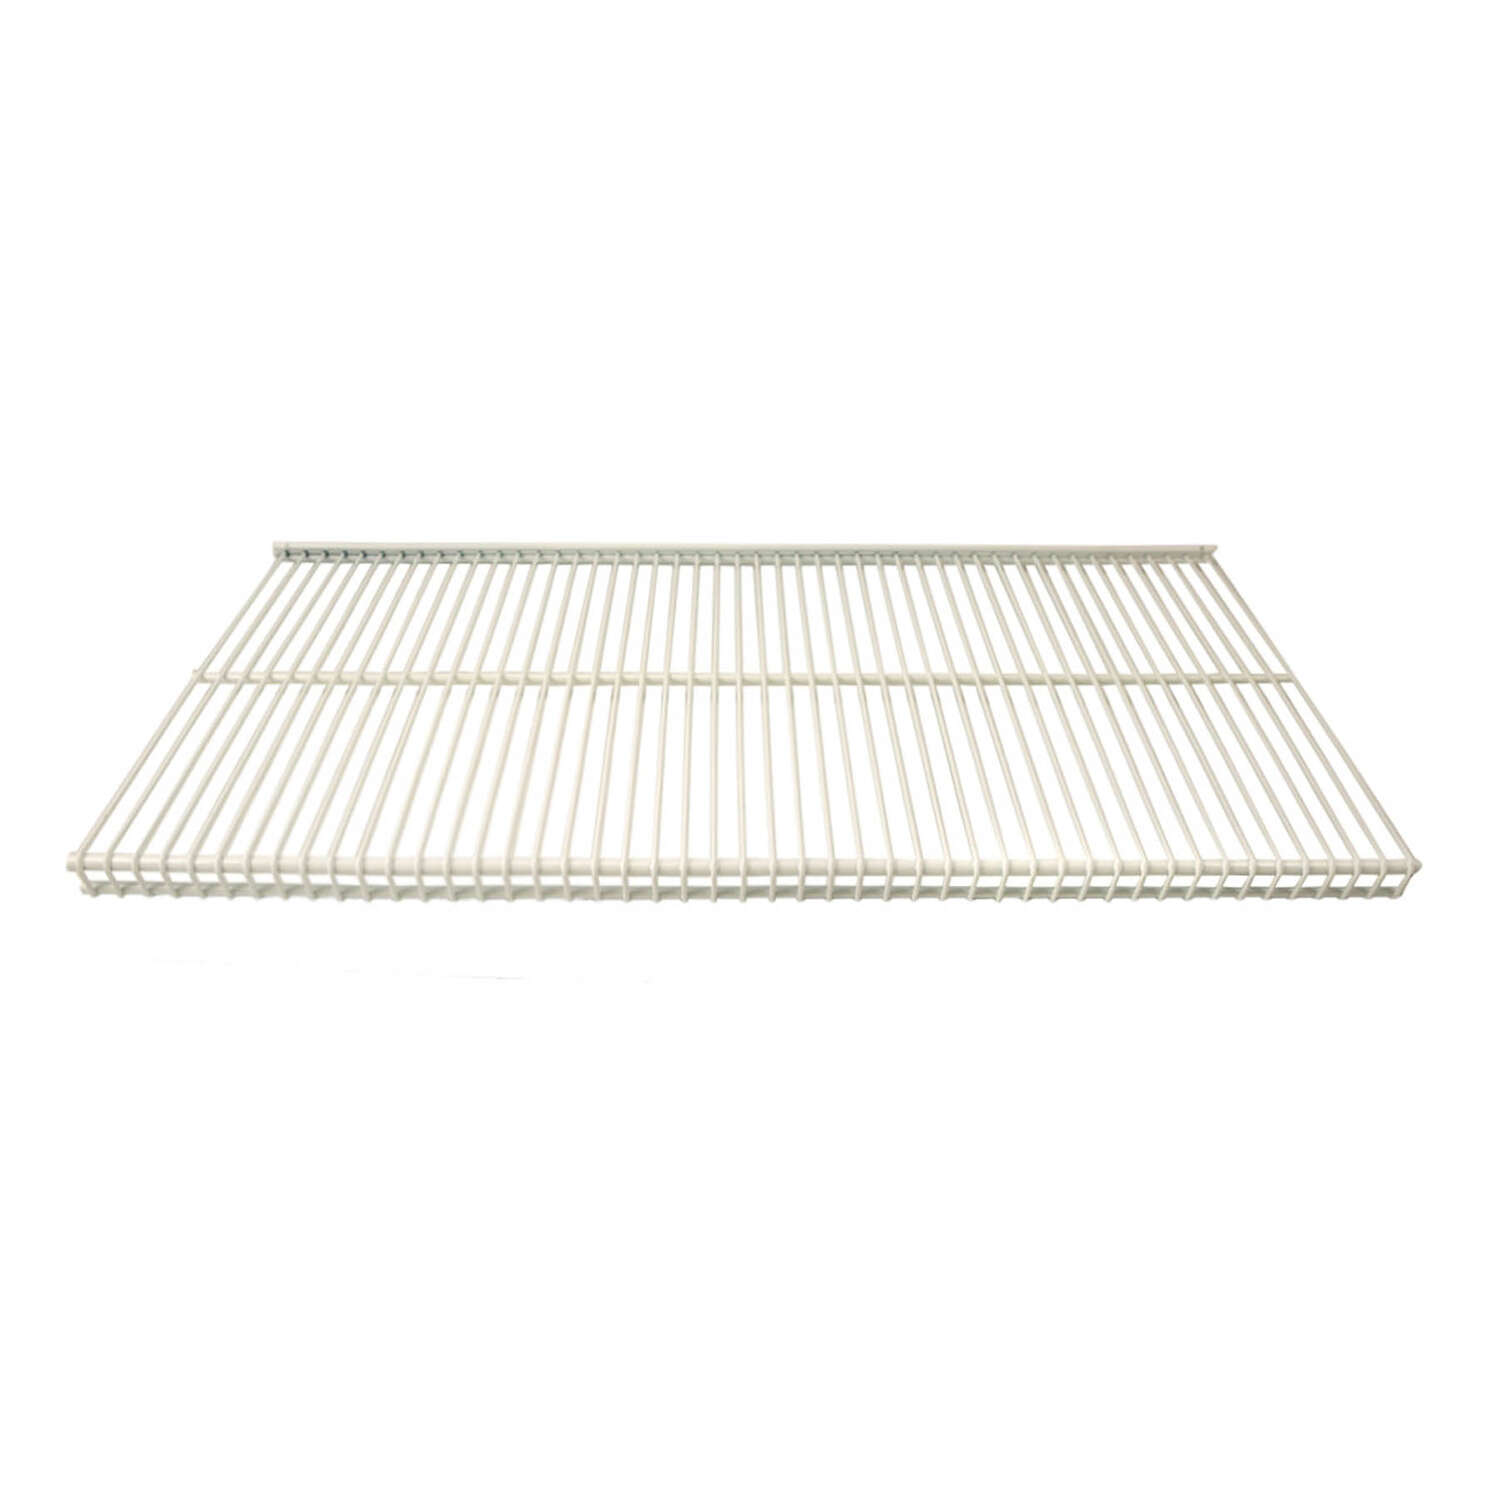 Organized Living  Freedom Rail  16 in. W x 48 in. L Steel  Ventilated Shelf  1 pk